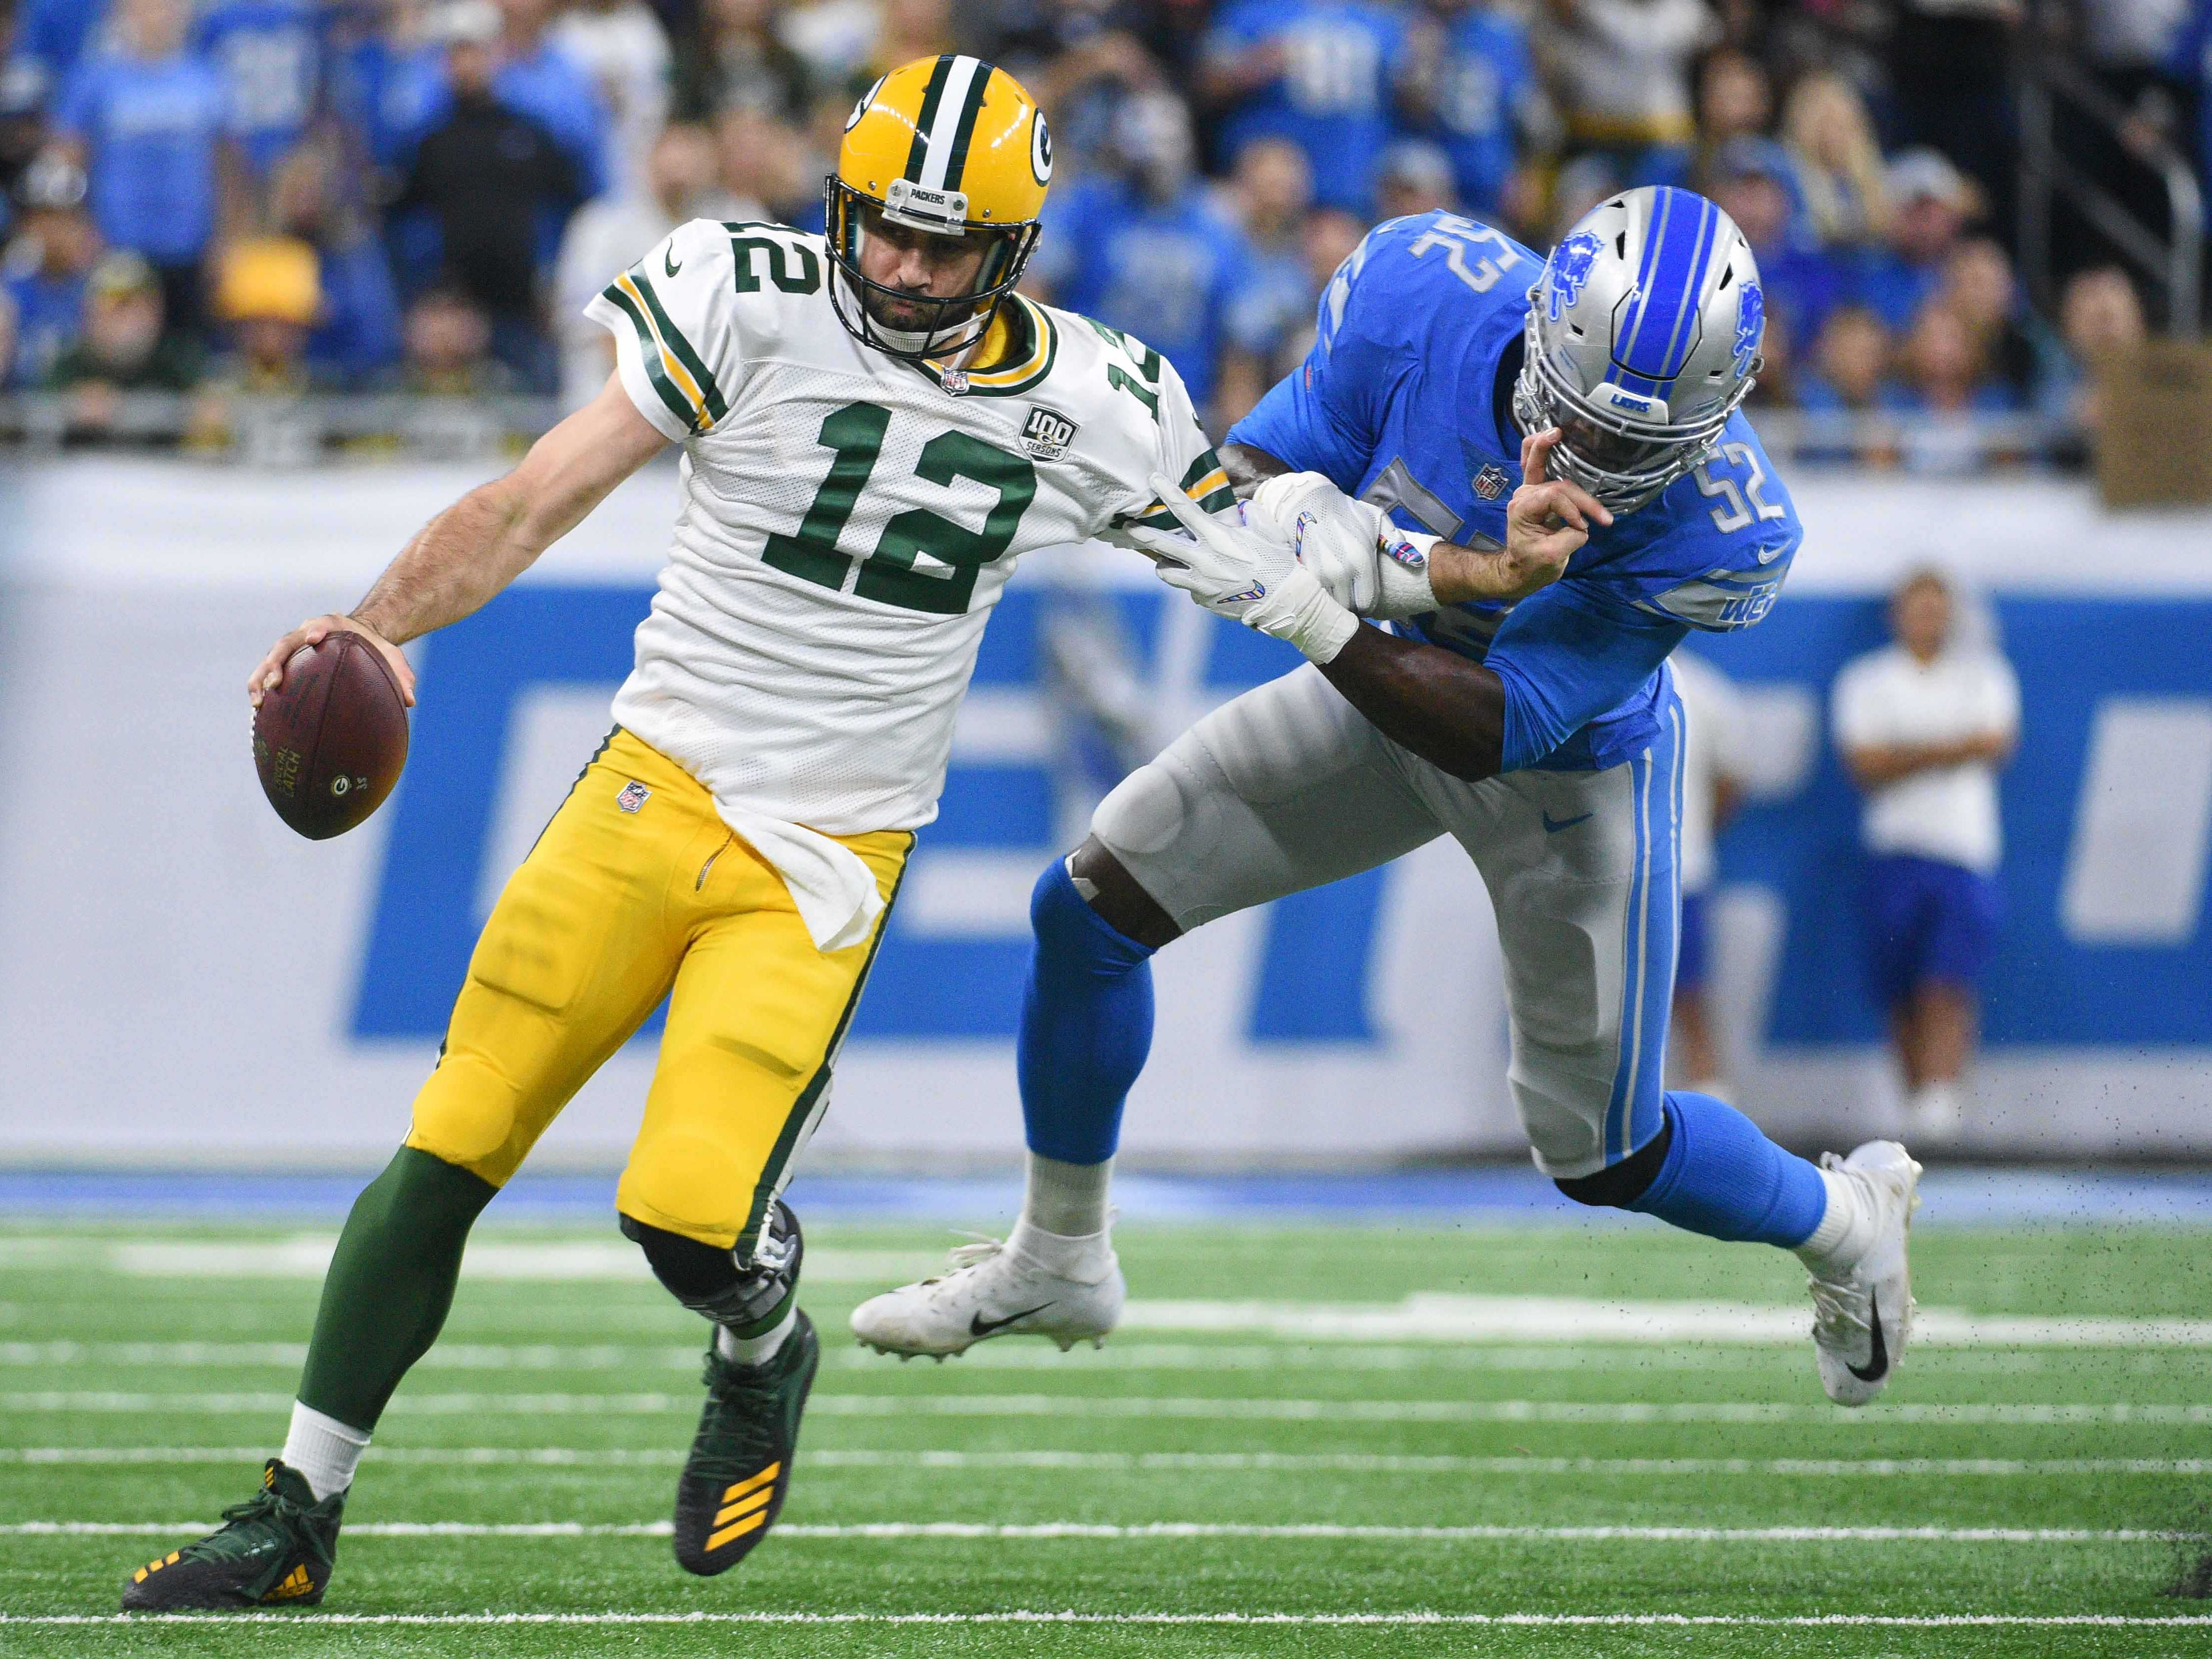 Oct 7, 2018; Detroit, MI, USA; Detroit Lions linebacker Christian Jones (52) attempts to tackle Green Bay Packers quarterback Aaron Rodgers (12) during the first quarter at Ford Field.